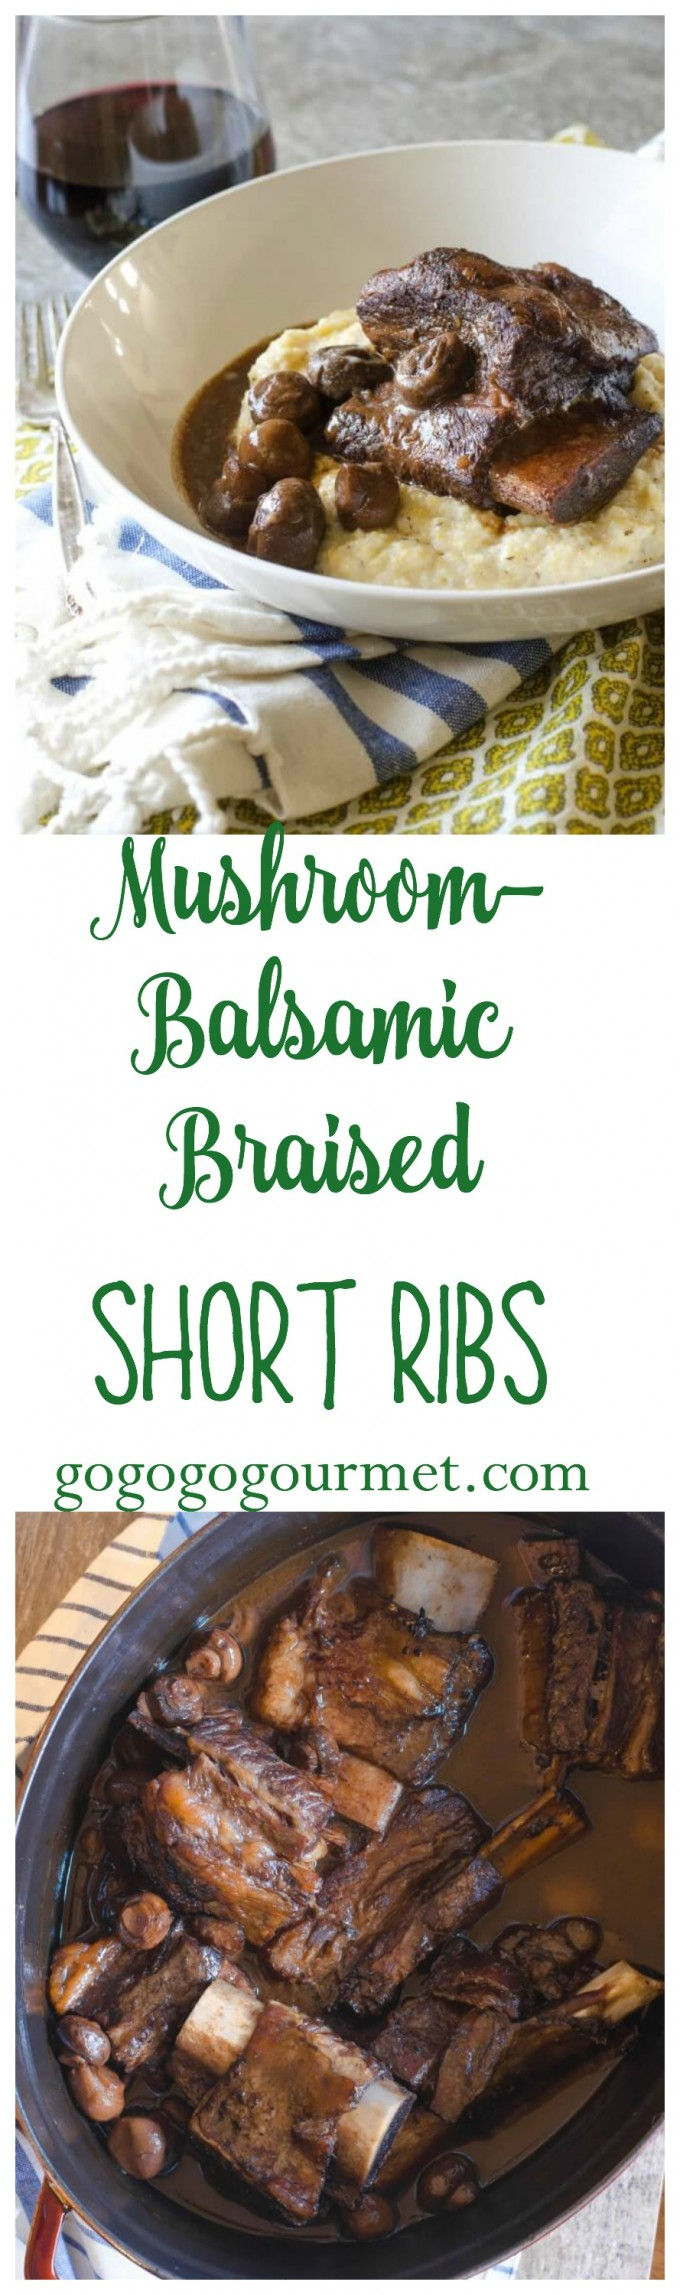 With just a few ingredients and 10 minutes, you can have these Mushroom Balsamic Braised Short Ribs in the oven braising! #gogogogourmet #braisedshortribs #shortribs via @gogogogourmet